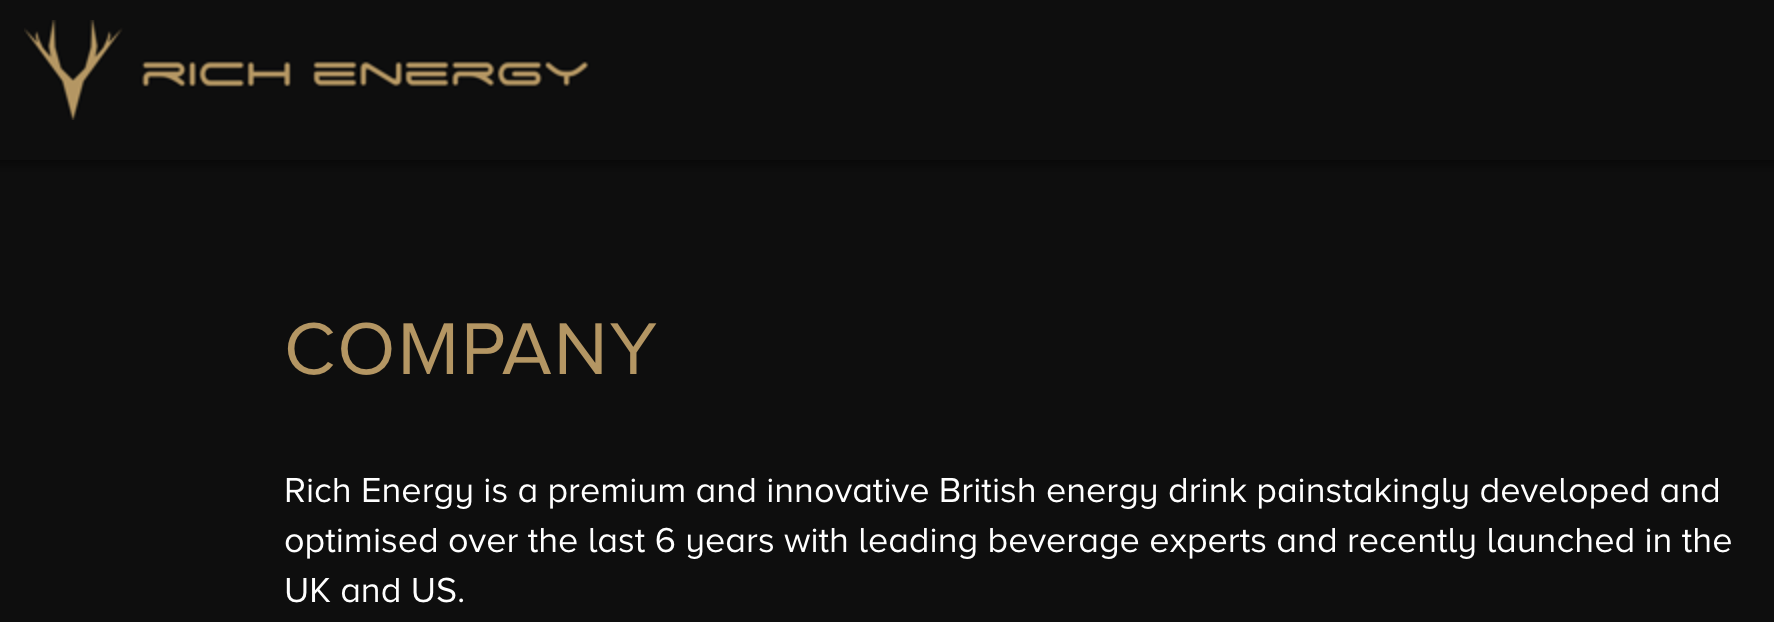 What You Find When You Look Into Rich Energy, the Mystery Sponsor of